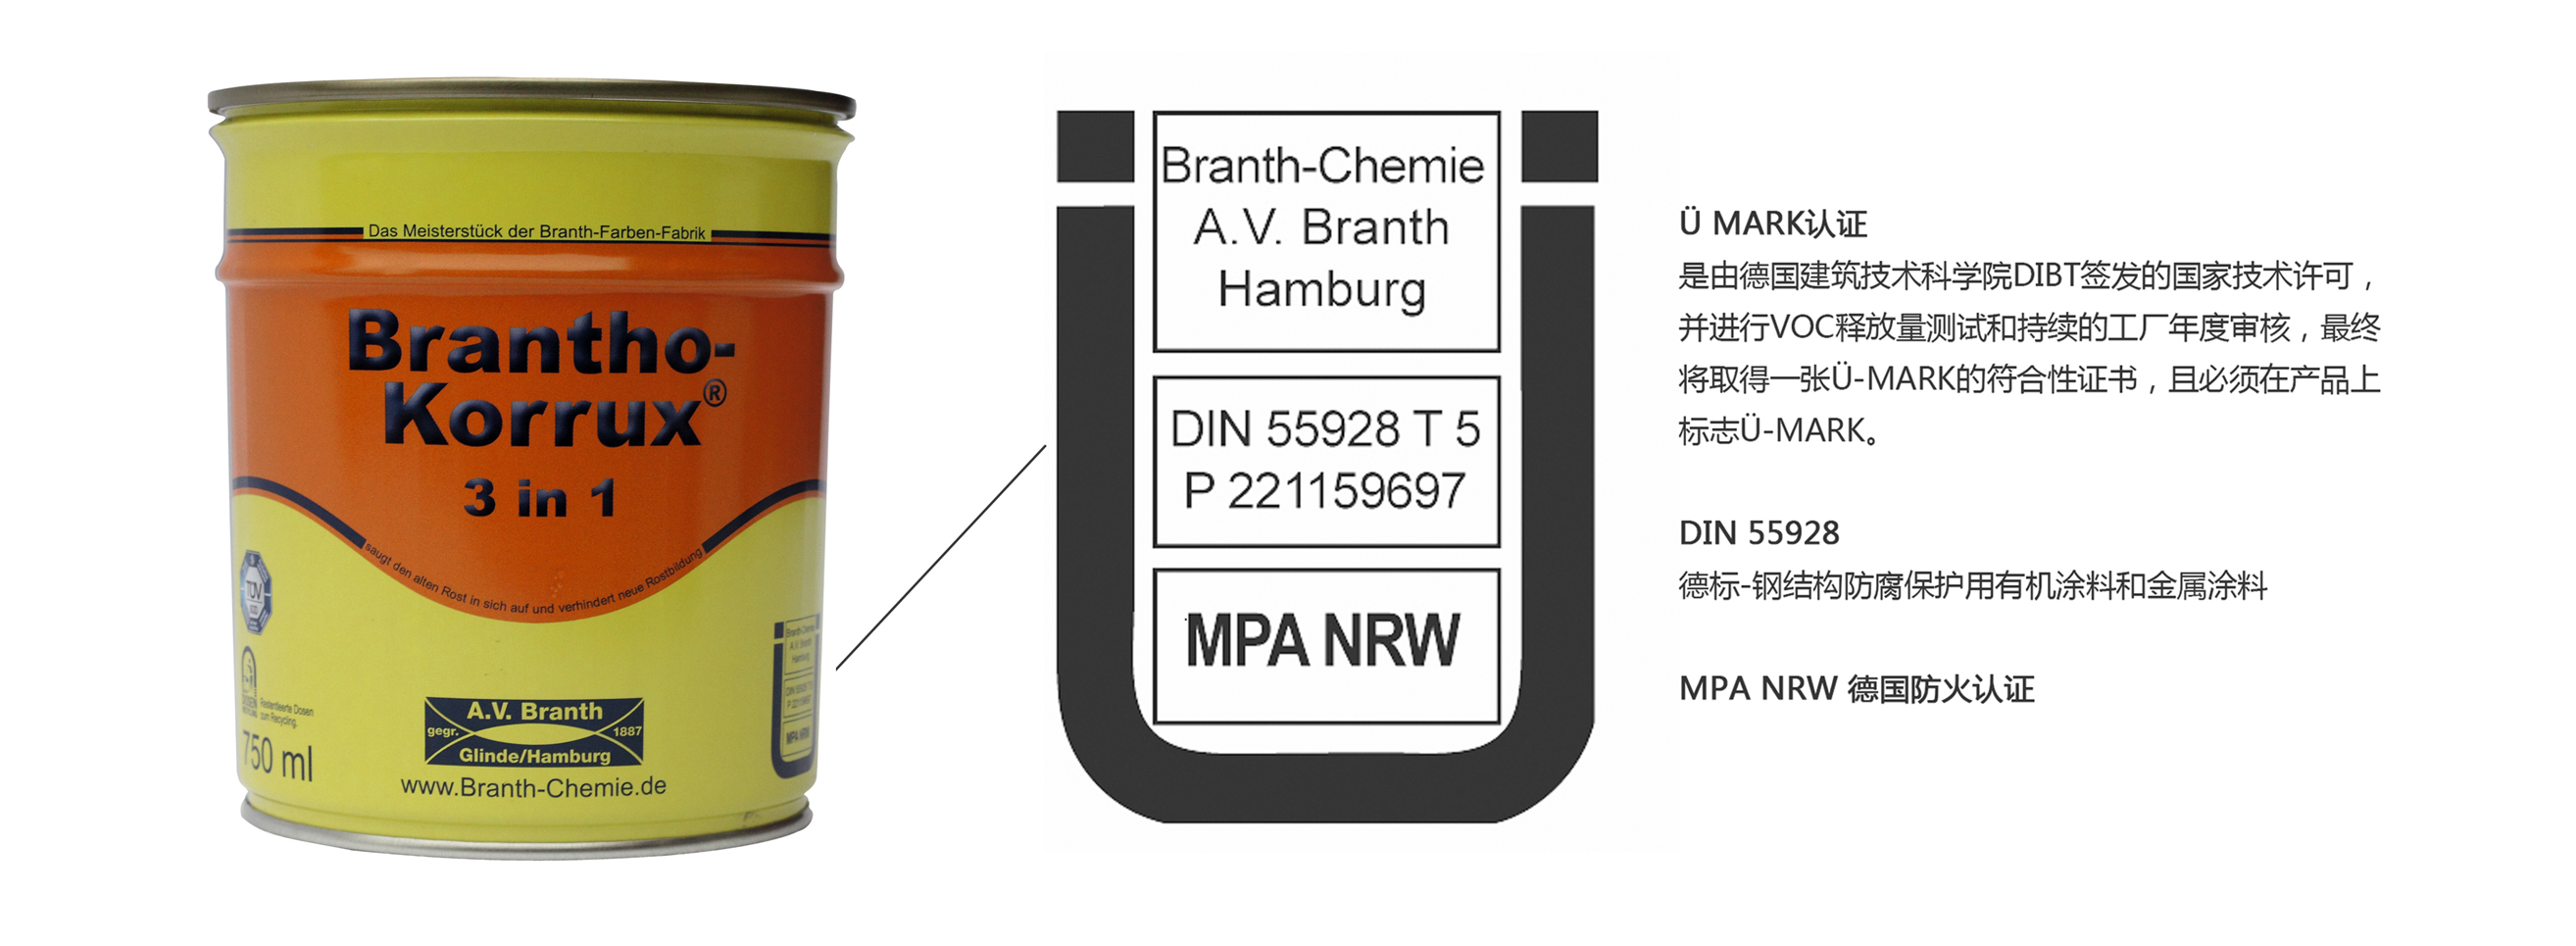 <a href=http://www.brantho-korrux.com.cn/products/3in1.html target=_blank class=infotextkey>防腐涂料</a>,<a href=http://www.brantho-korrux.com.cn/products/3in1.html target=_blank class=infotextkey>带锈防腐</a>涂料,免除锈防锈漆